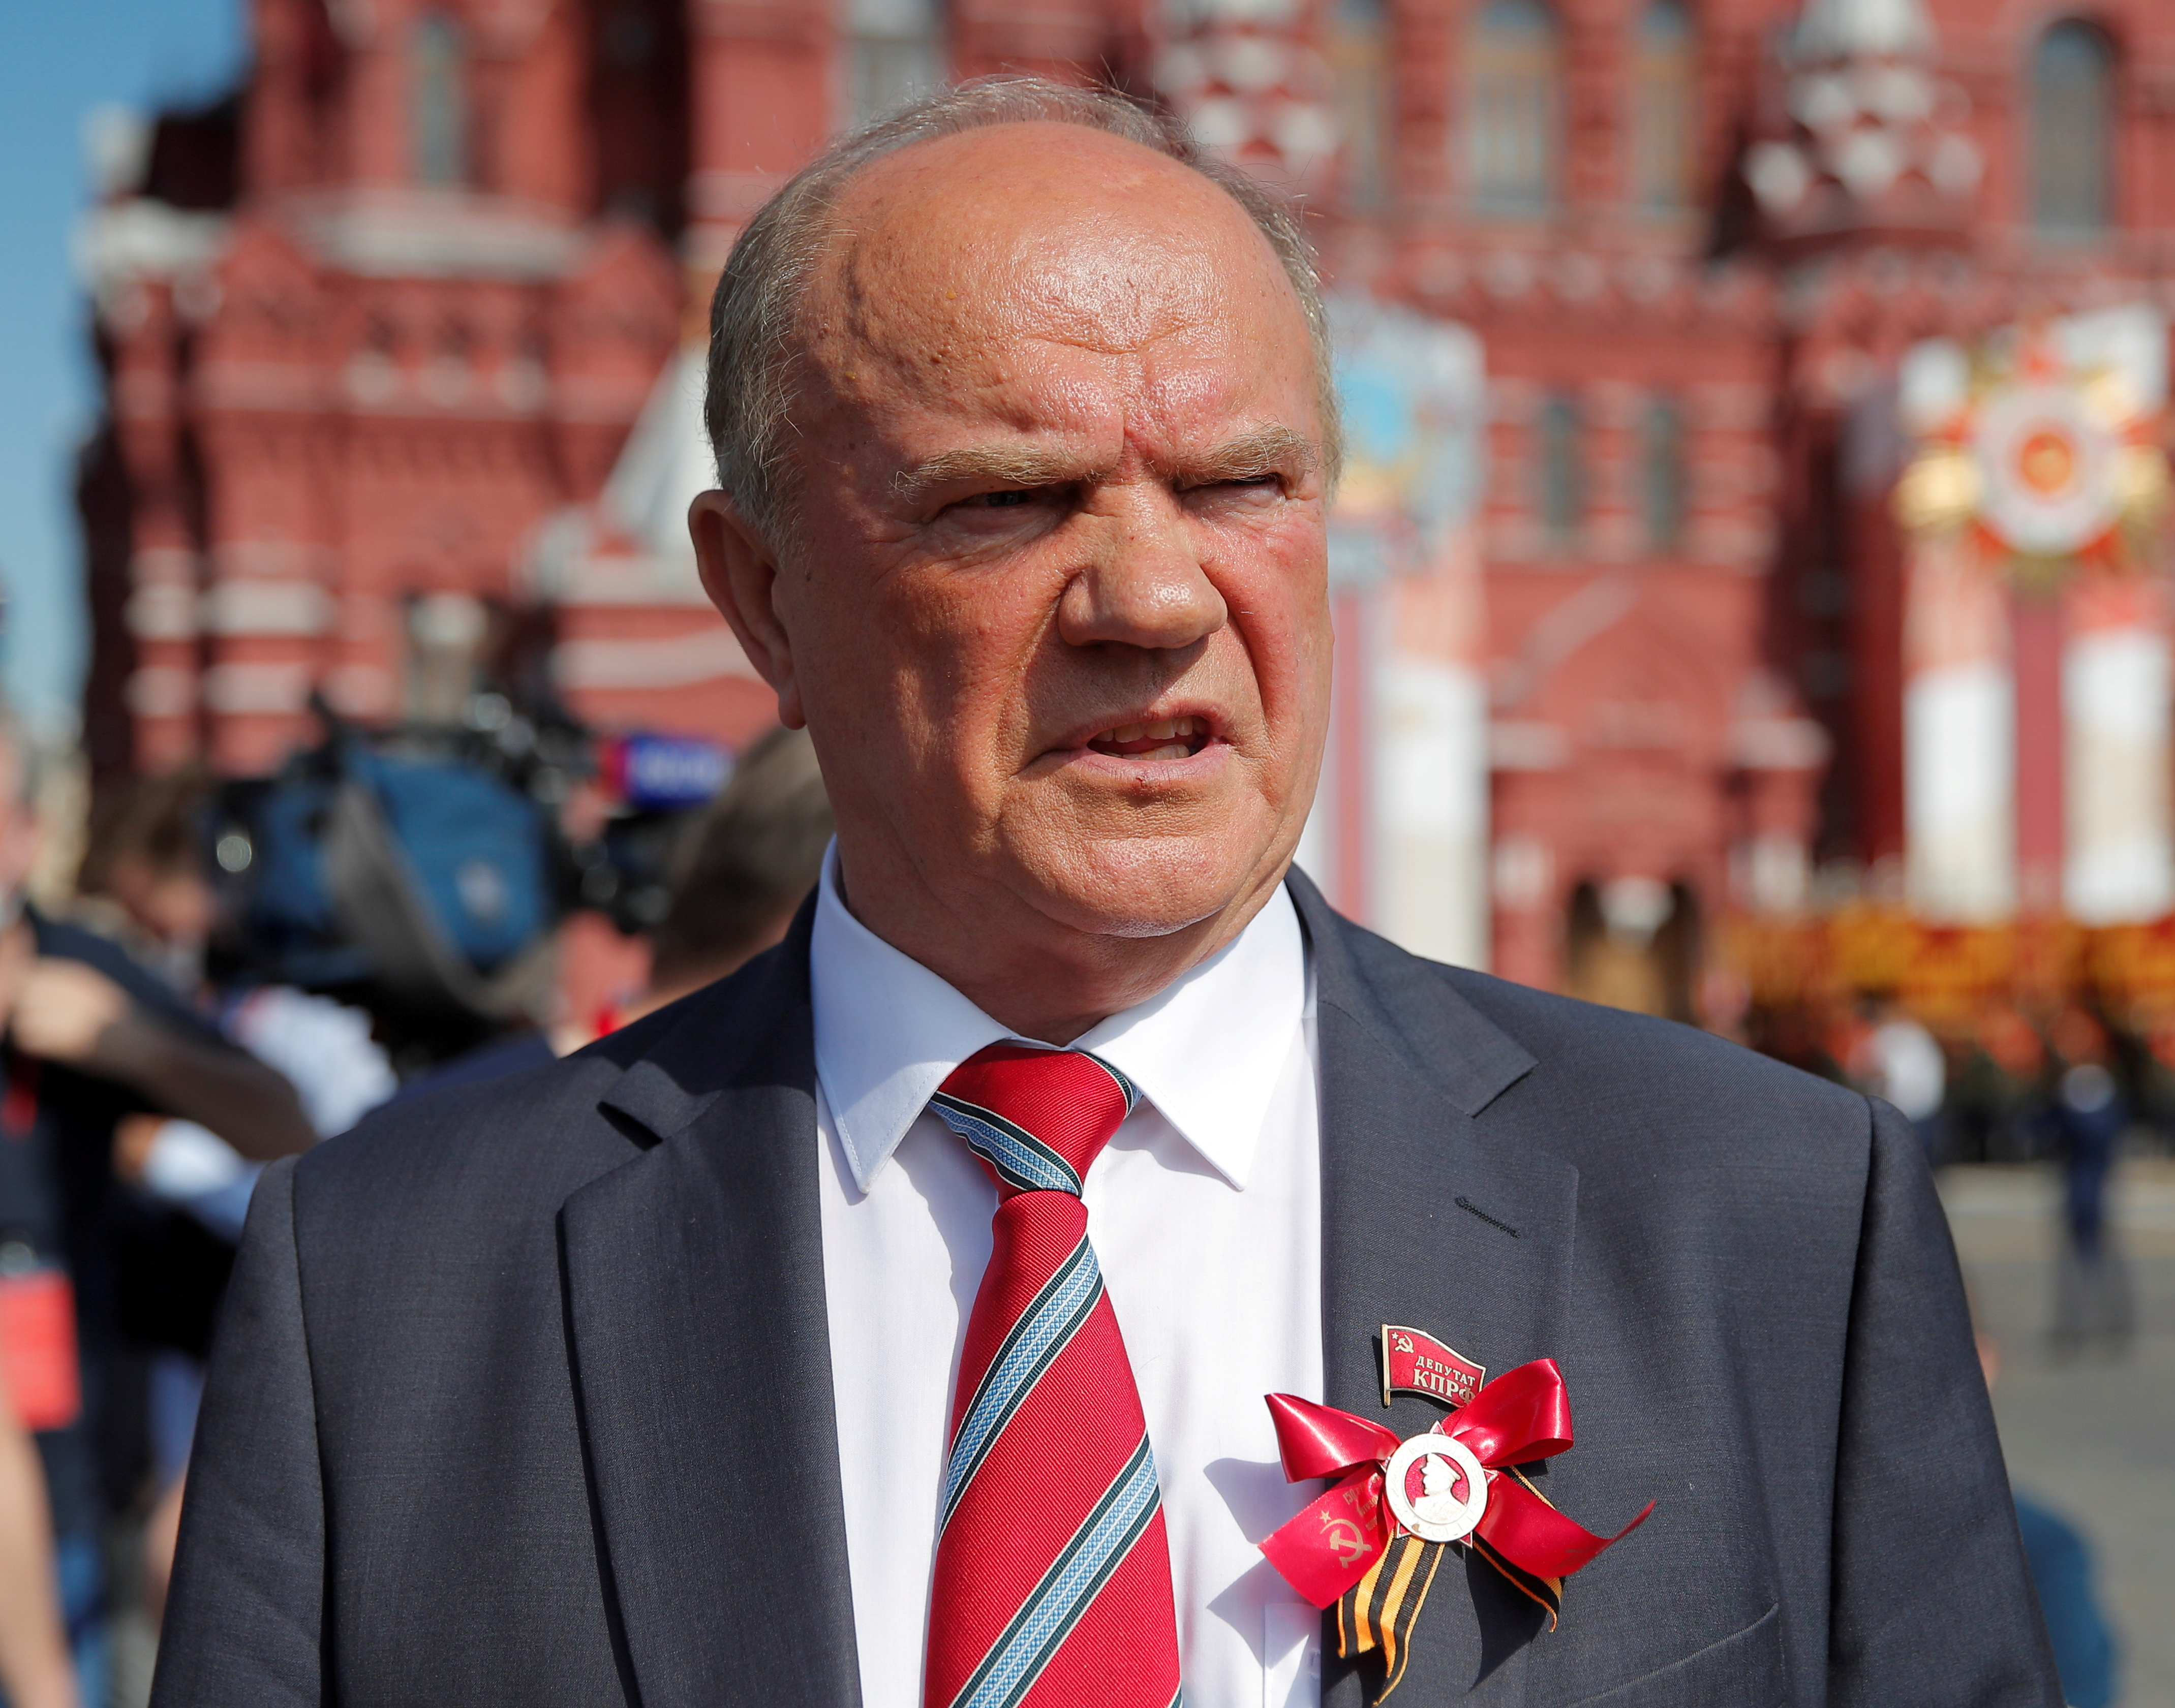 Leader of the Russian Communist Party Gennady Zyuganov is seen in Red Square before the Victory Day Parade in Moscow, Russia June 24, 2020. REUTERS/Maxim Shemetov